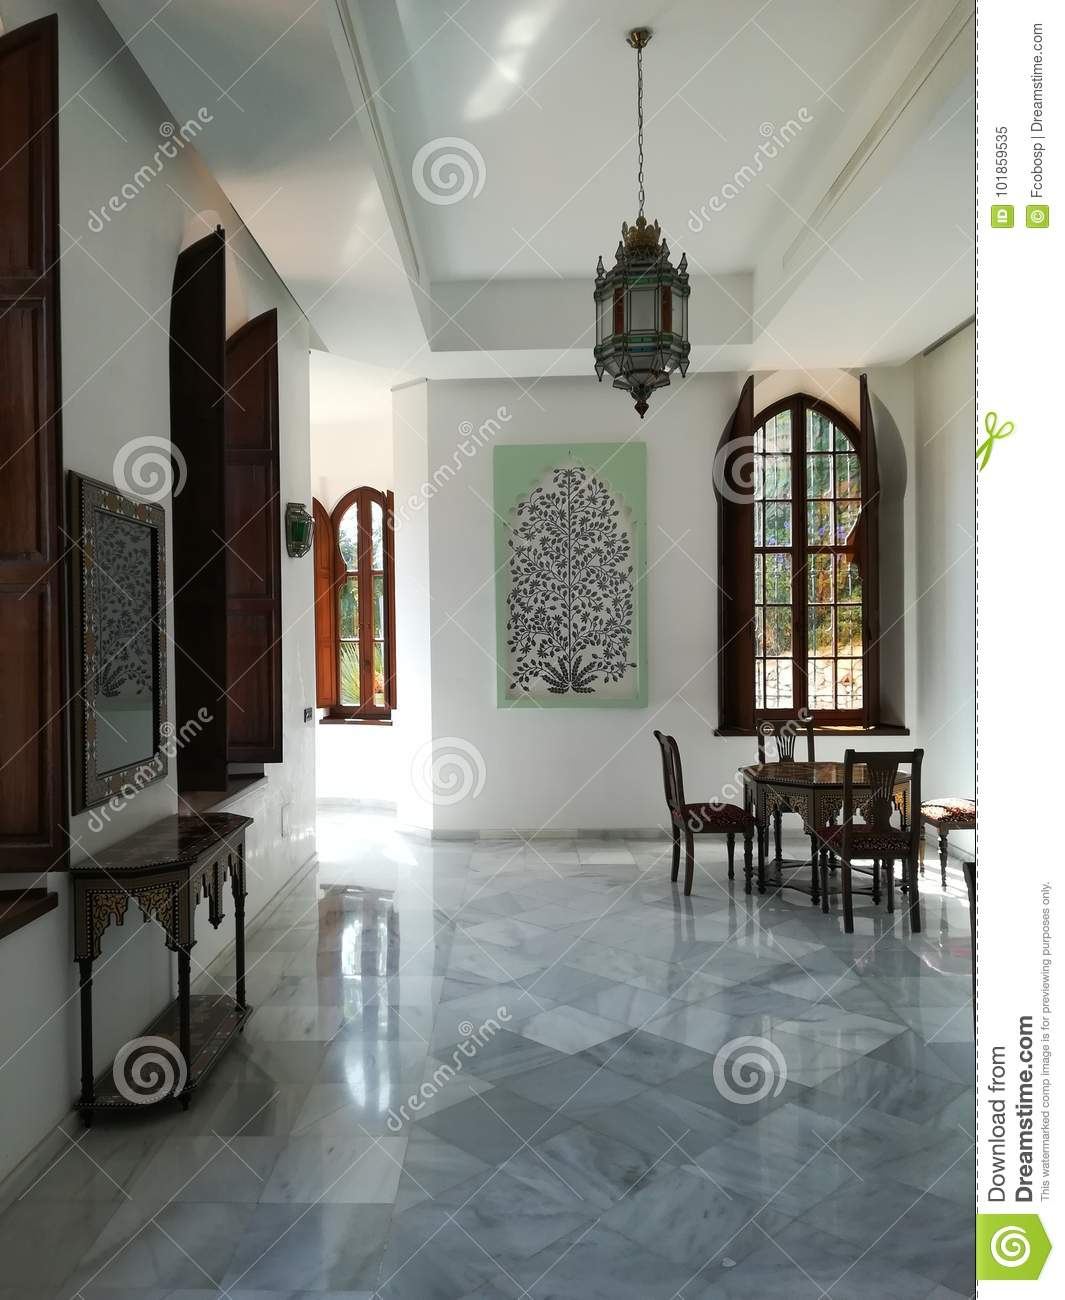 House Of Navajas Interior In Torremolinos Costa Del Sol Editorial Image Image Of Floor Furniture 101859535